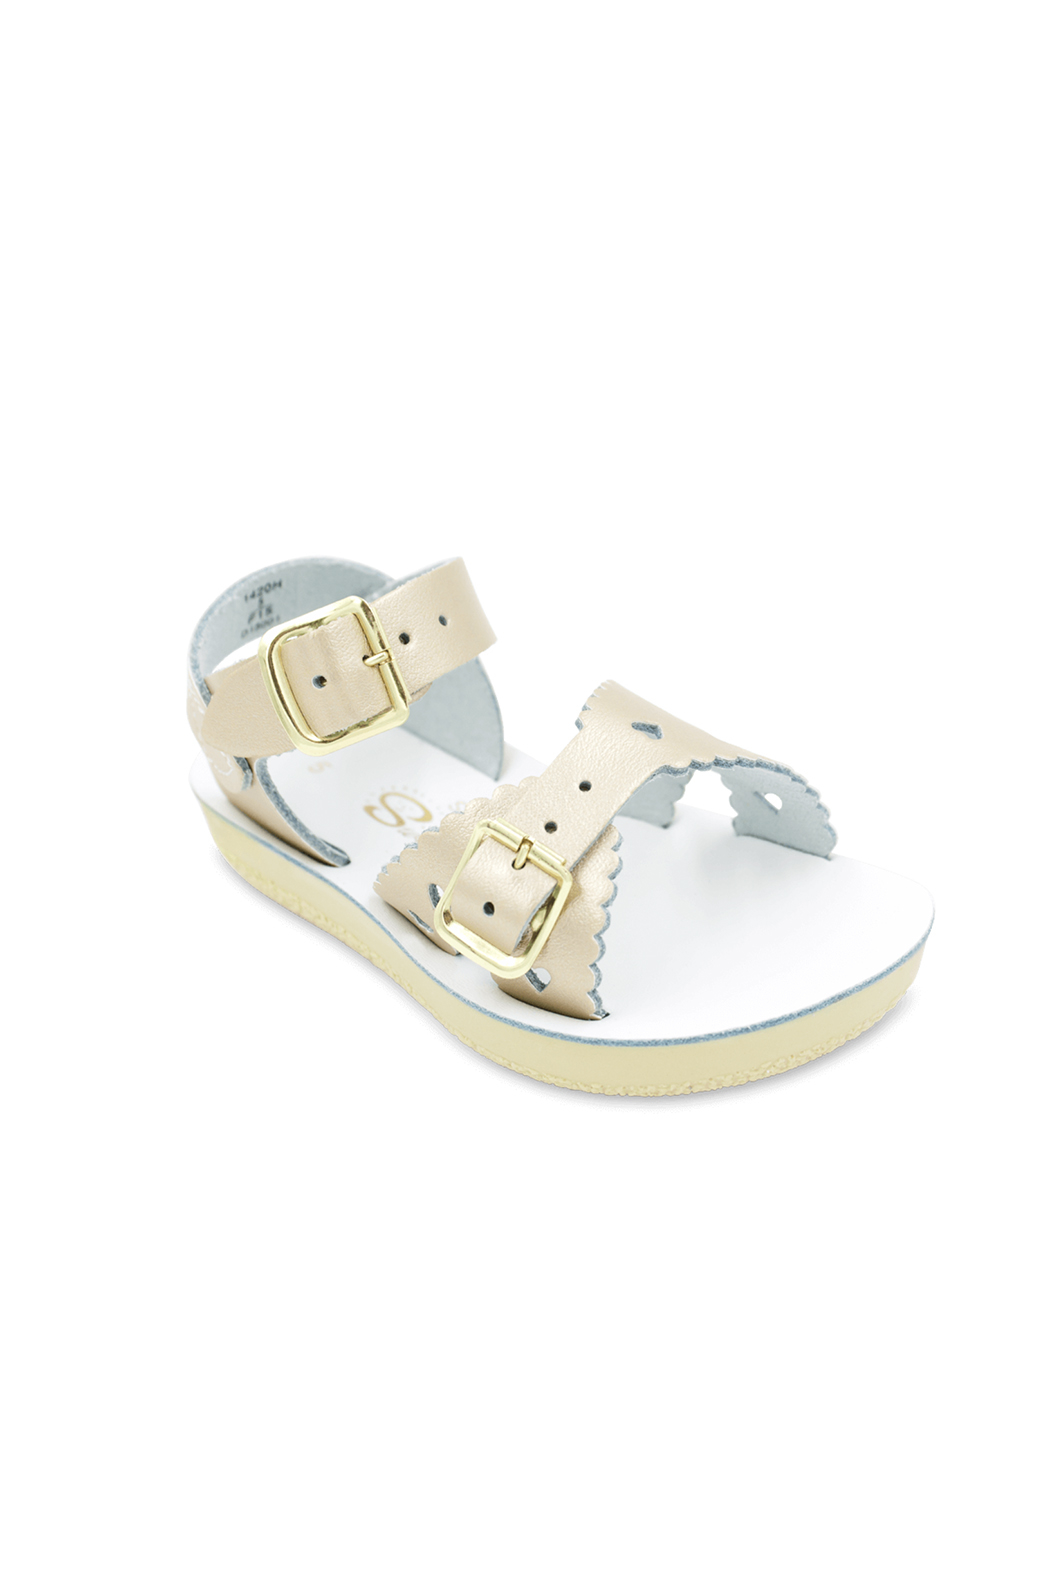 Hoy Shoes Sweetheart Salt Water Sandal - Front Cropped Image